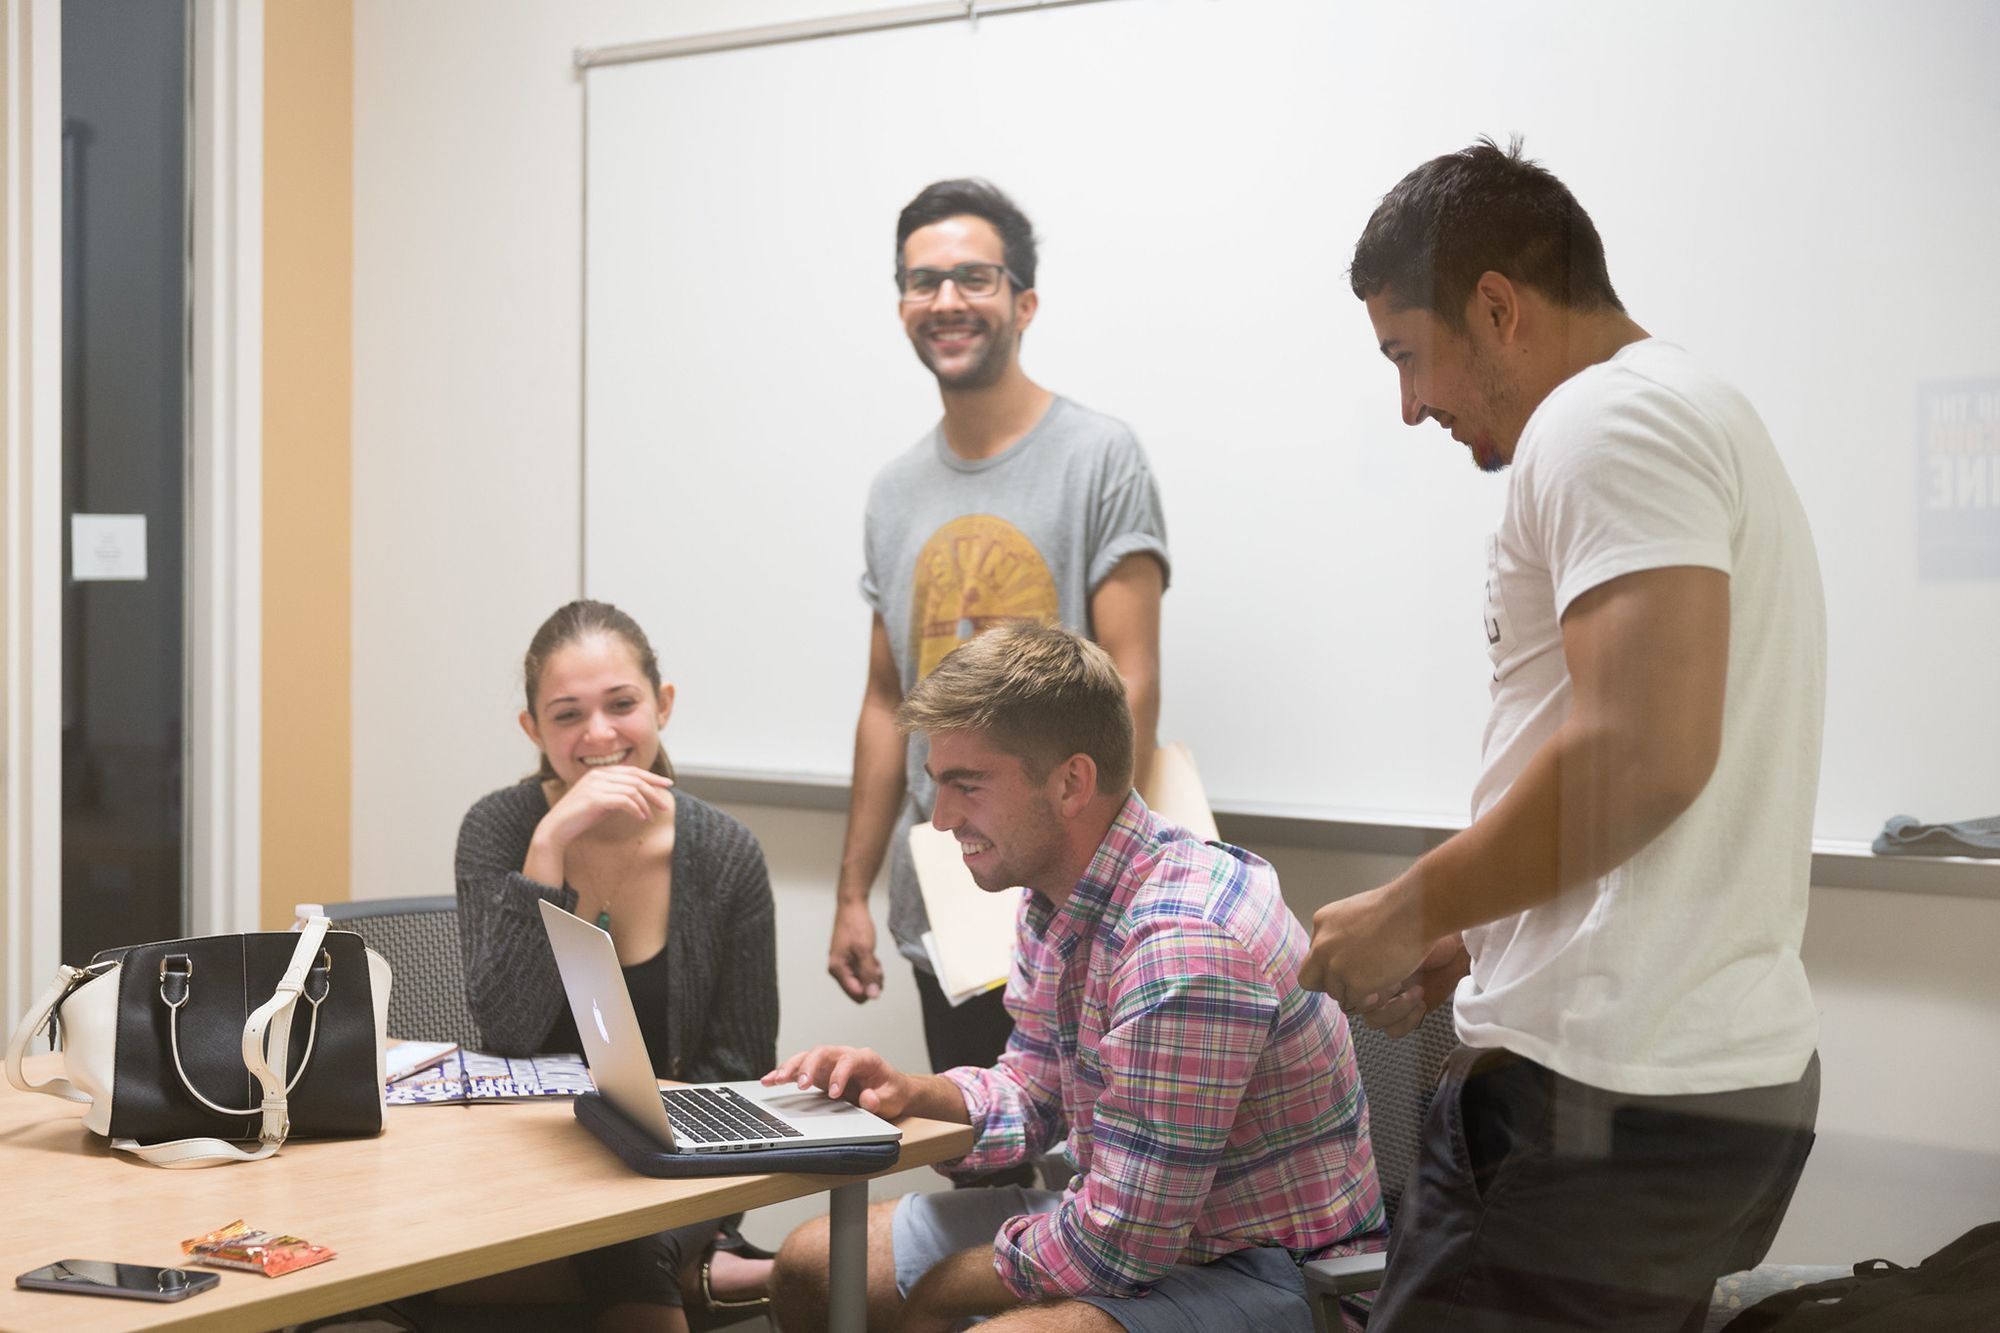 Students gathered around a friend on his computer laughing.